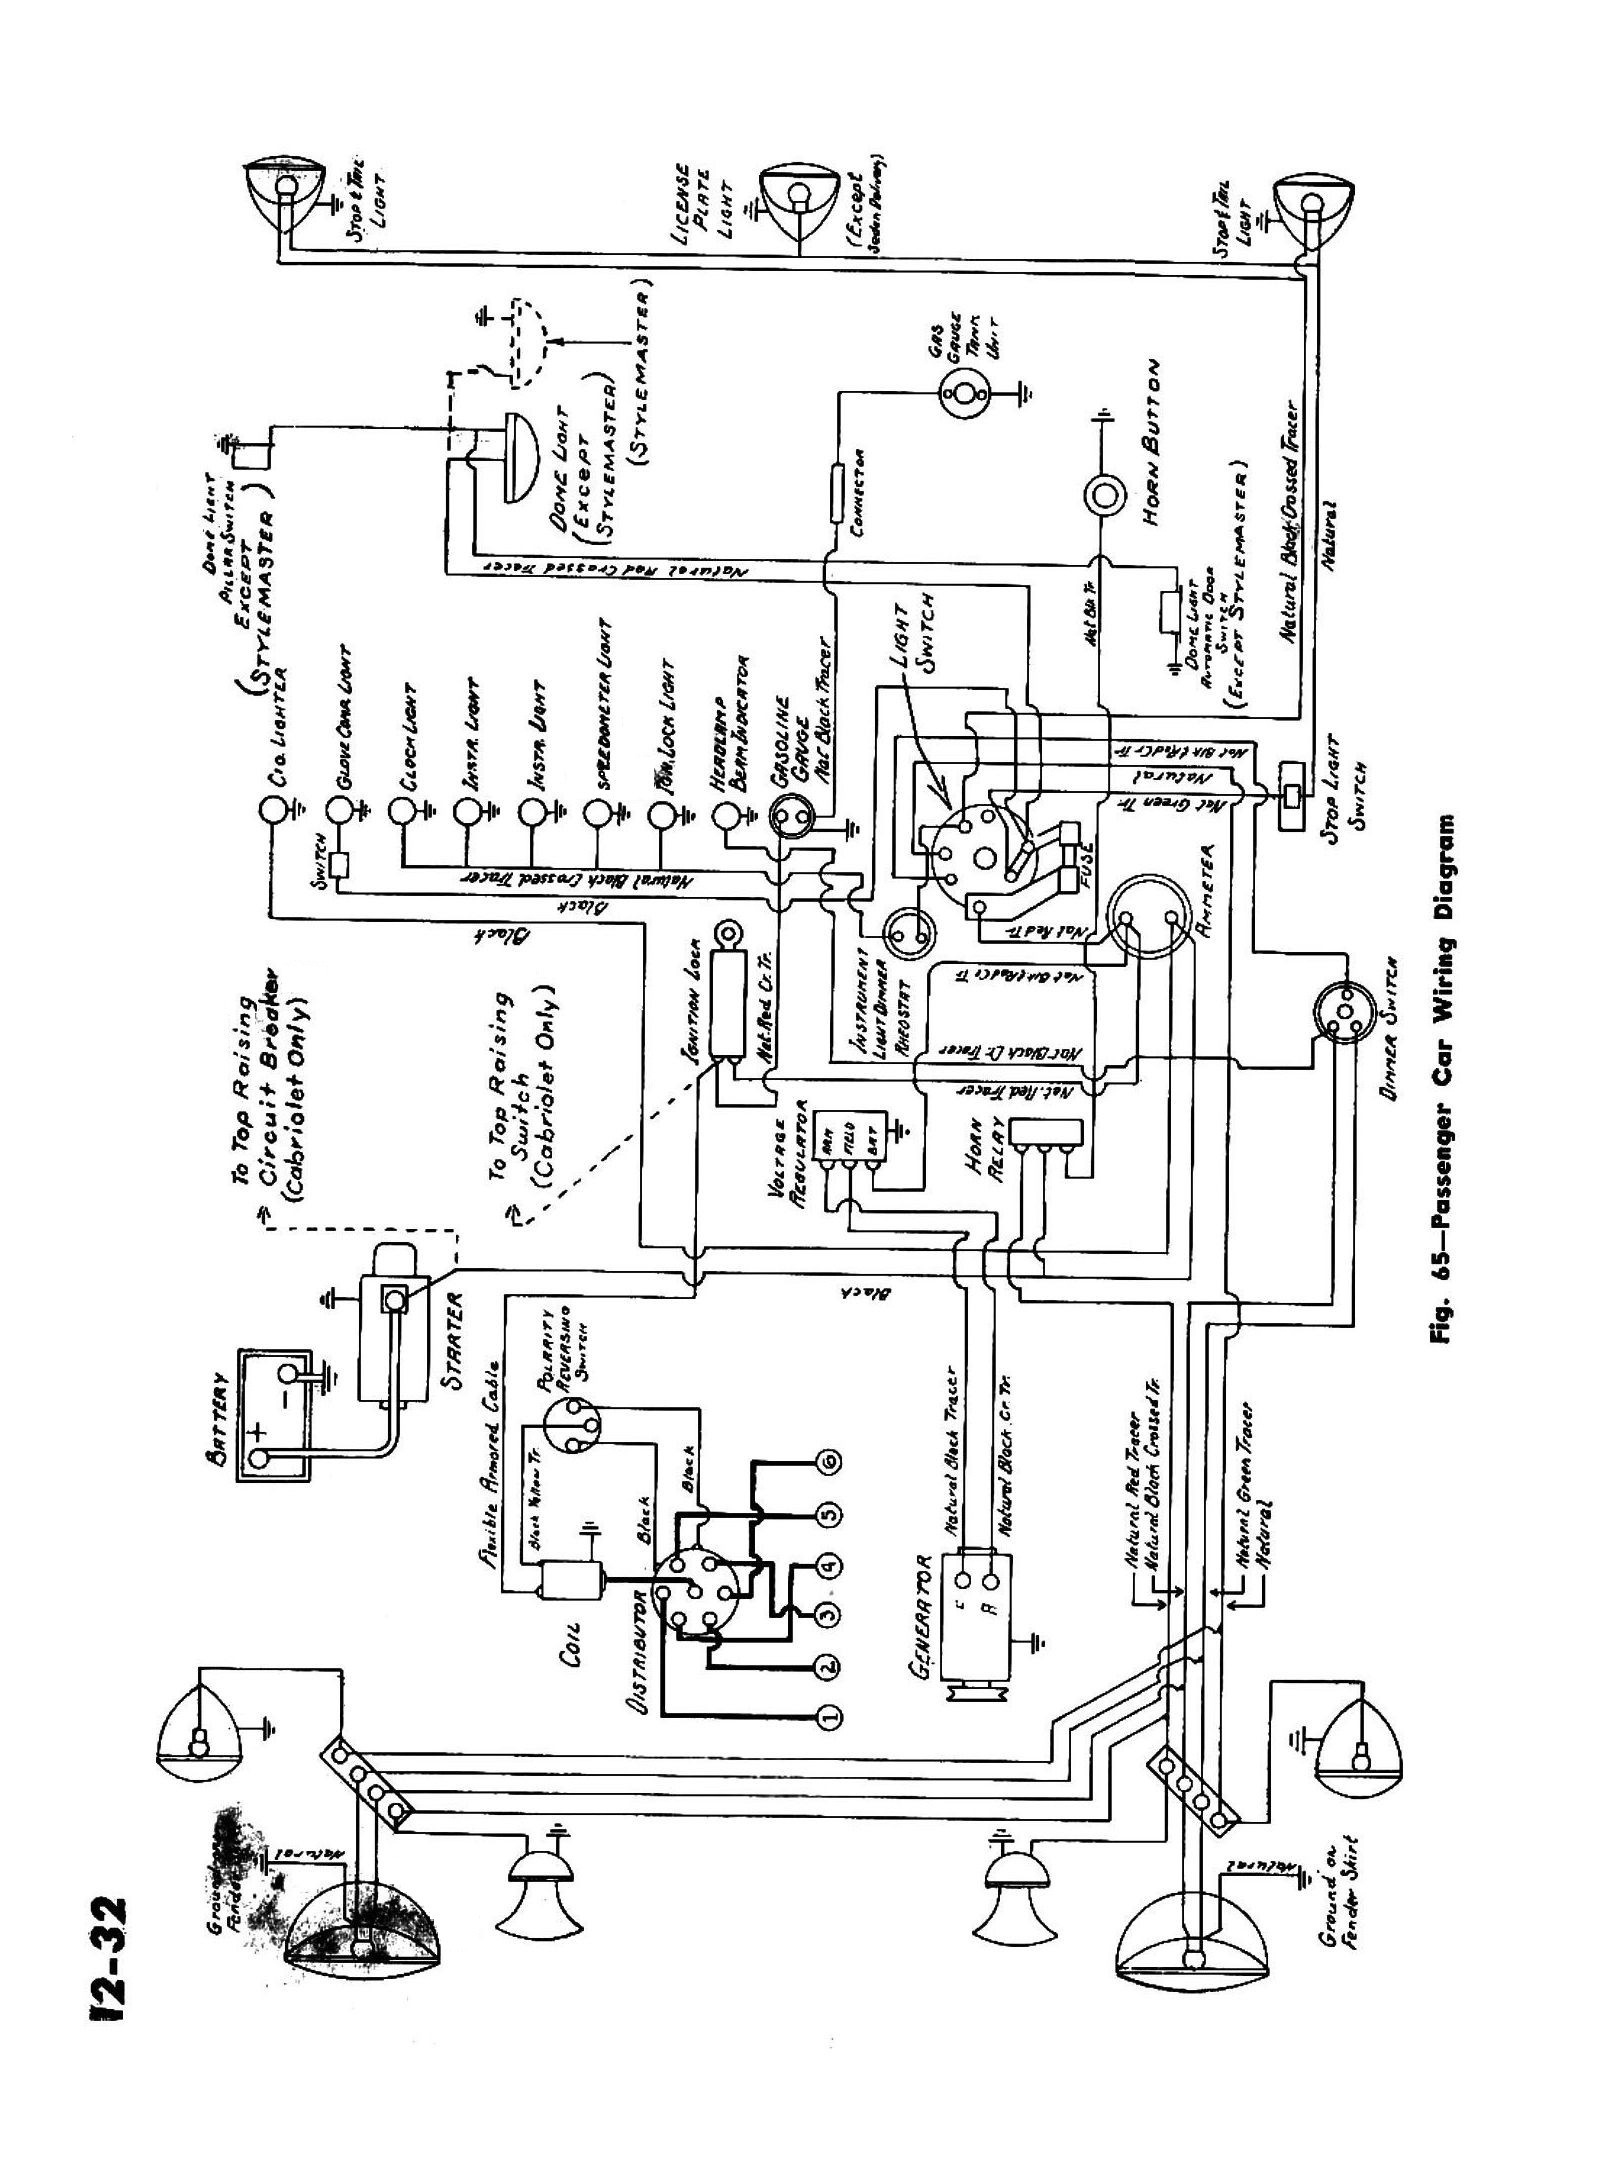 Cars Wiring Diagram | Wiring Diagram - Auto Wiring Diagram